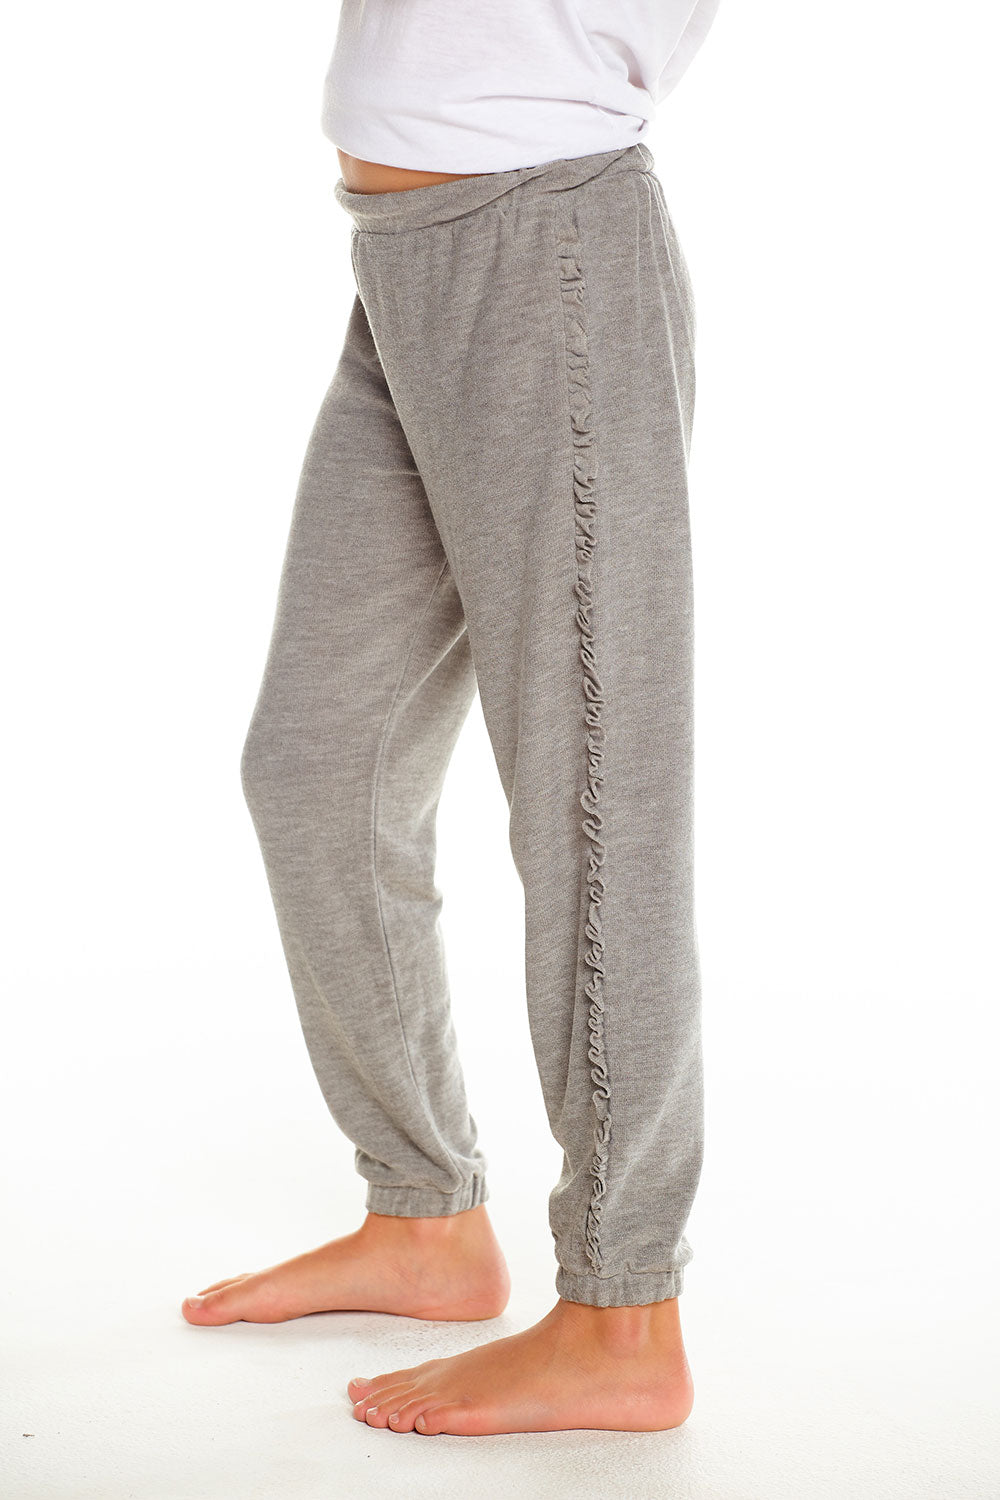 Cozy Knit Slouchy Jogger W/ Ruffle Sides GIRLS chaserbrand4.myshopify.com